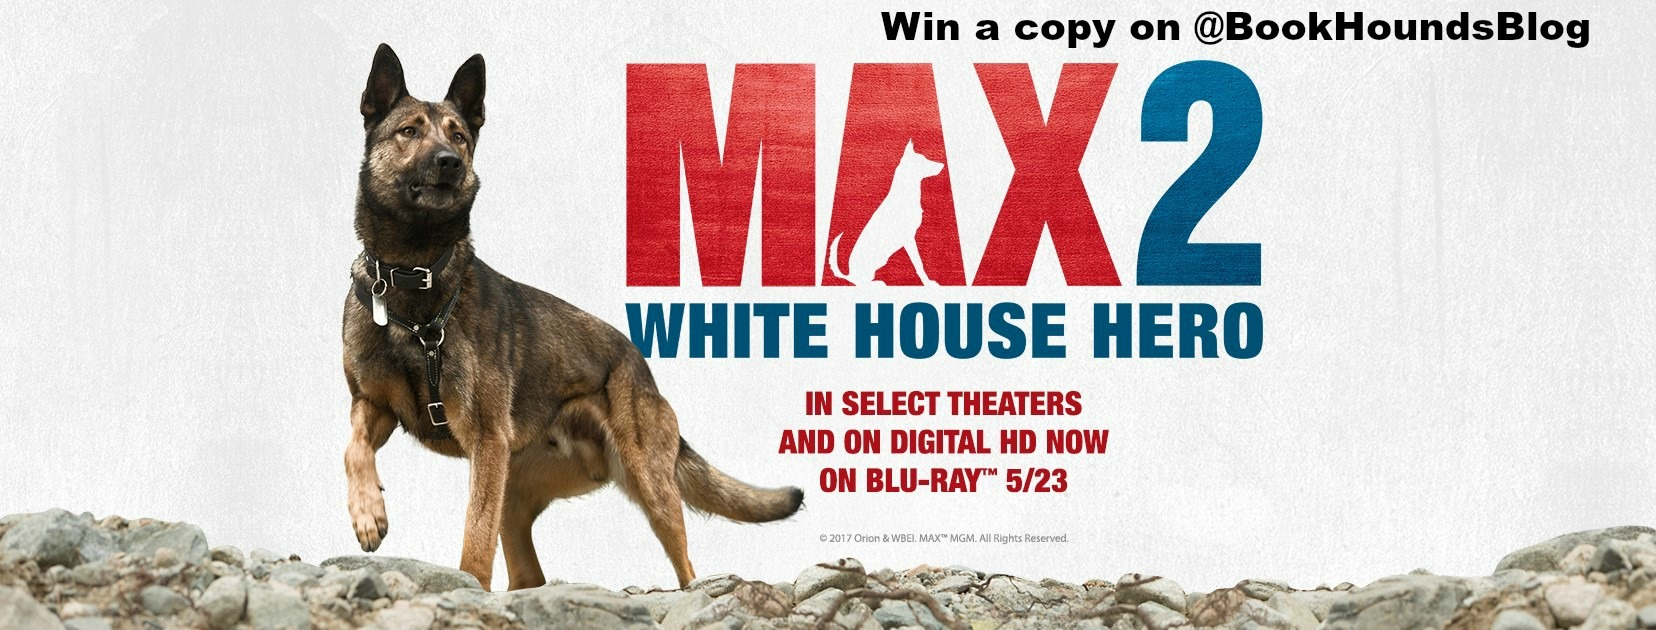 1 copy DVD MAX 2 WHITE HOUSE HERO - US only